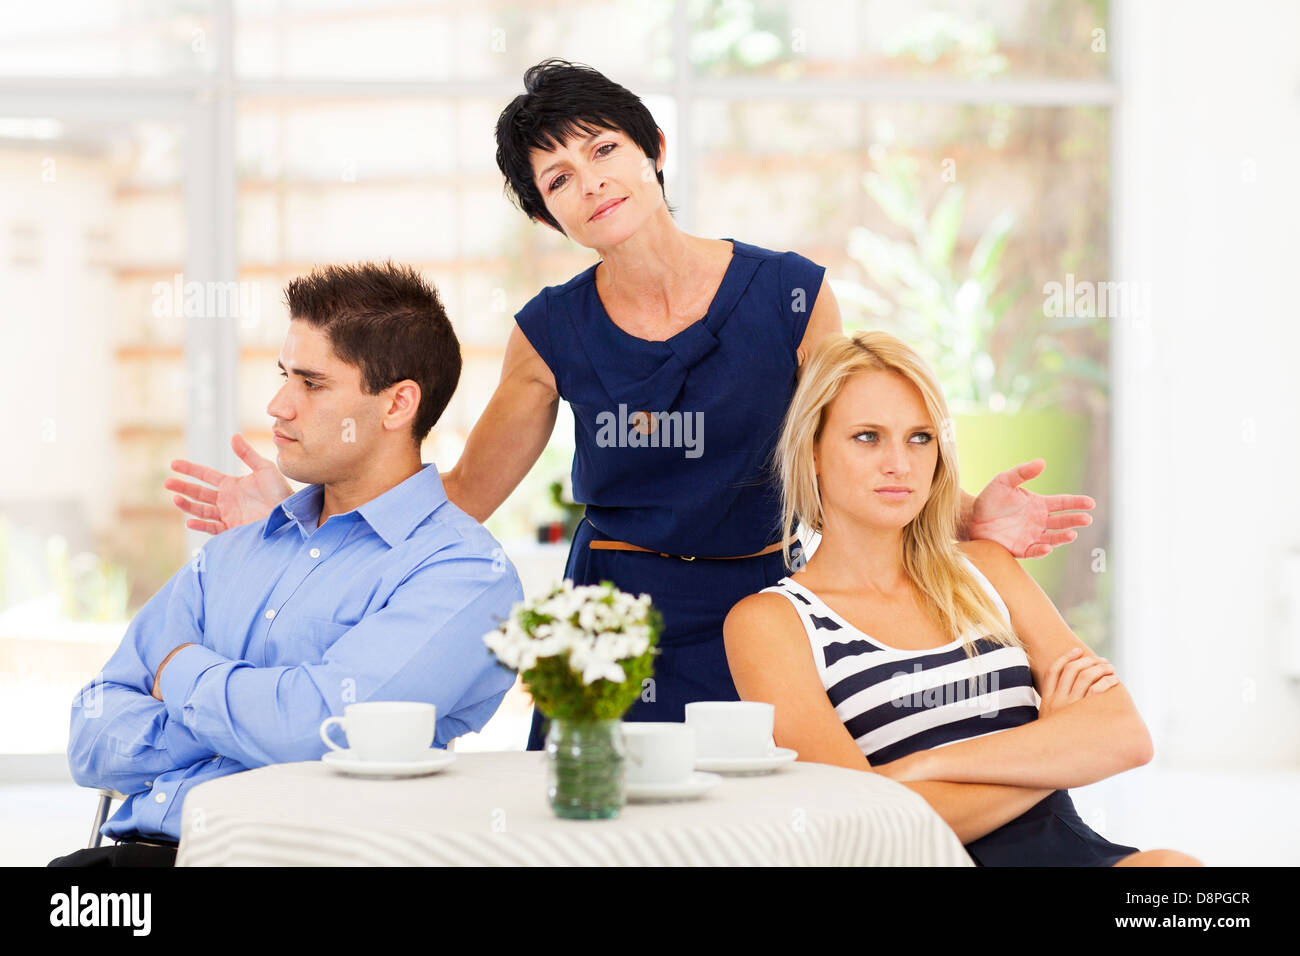 middle aged mother feeling helpless when caught in between young couple's fight - Stock Image